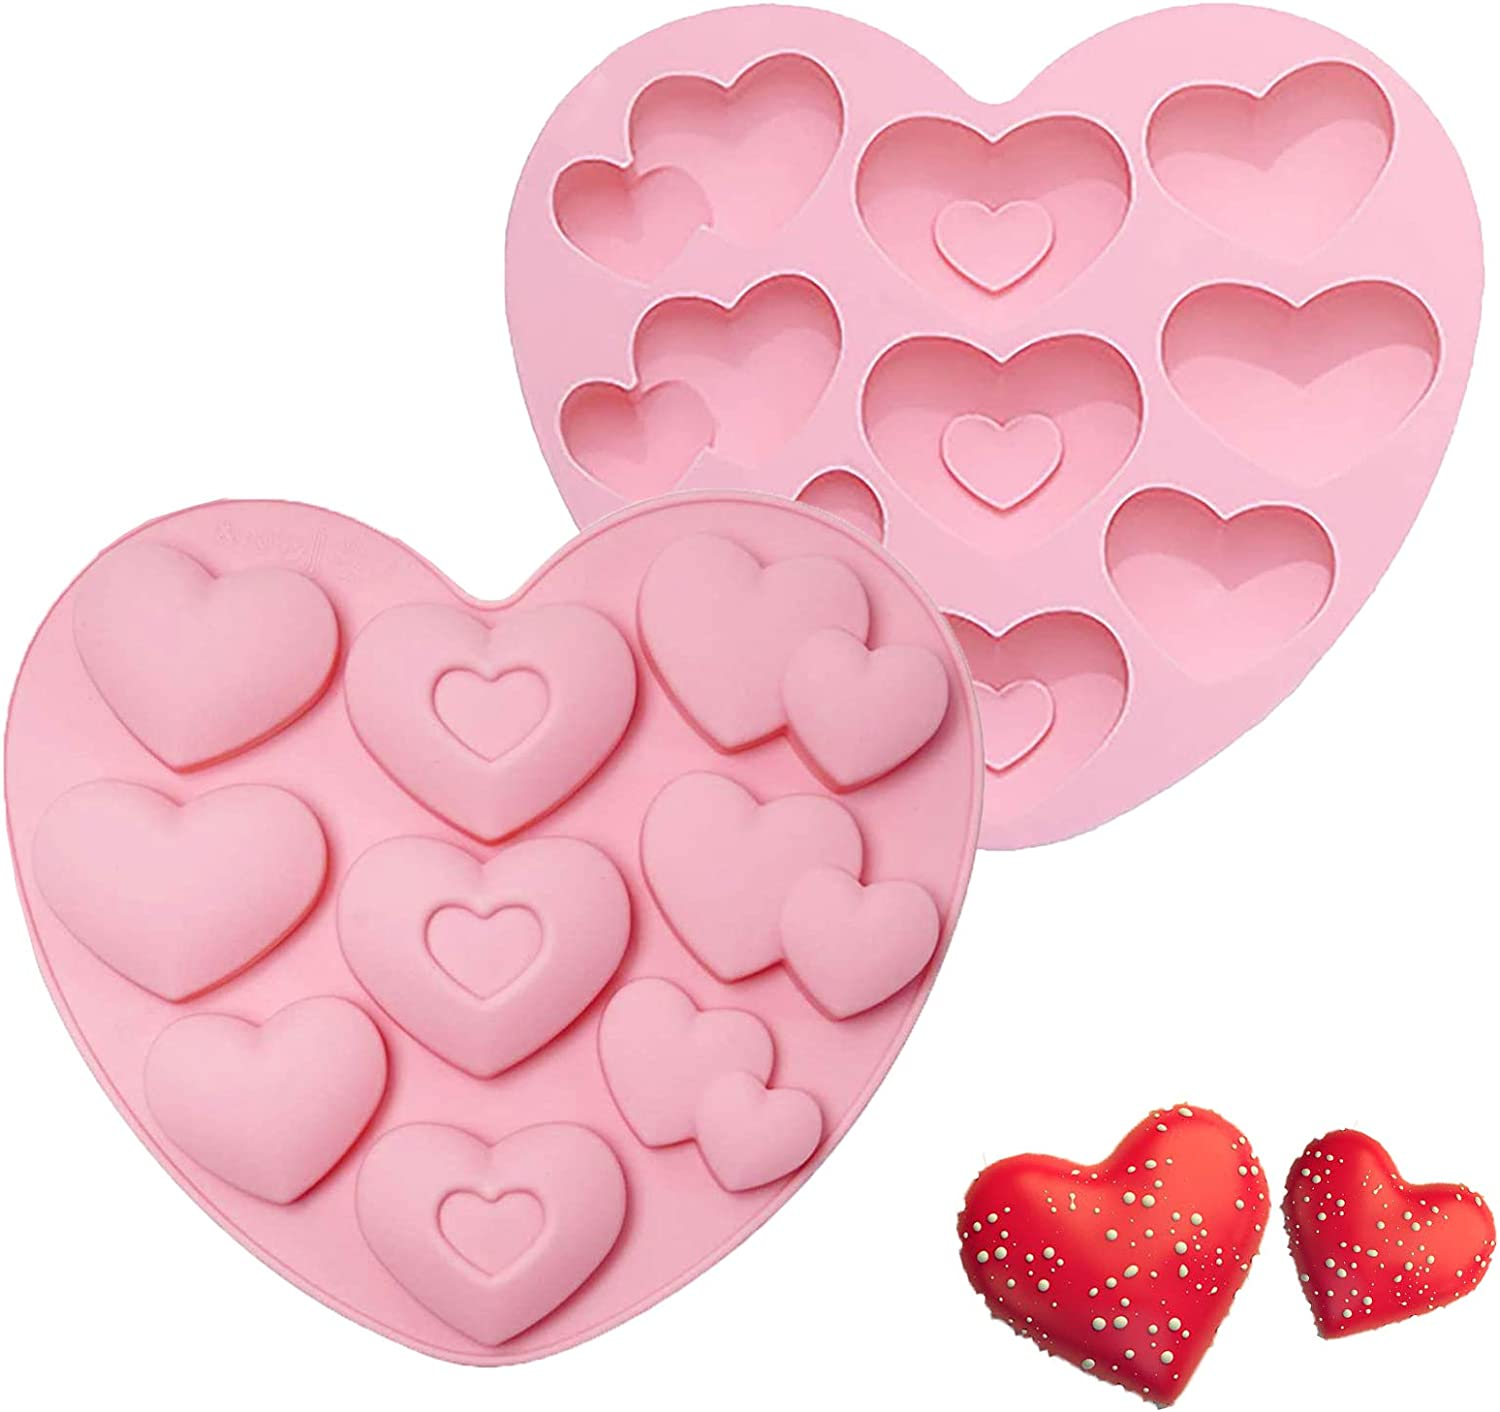 Meedy Heart Shaped Silicone Molds for Chocolate Bombs, 2 Packs Baking Mold for Hot Chocolate Bomb Cake Jelly Dome Mousse Dessert